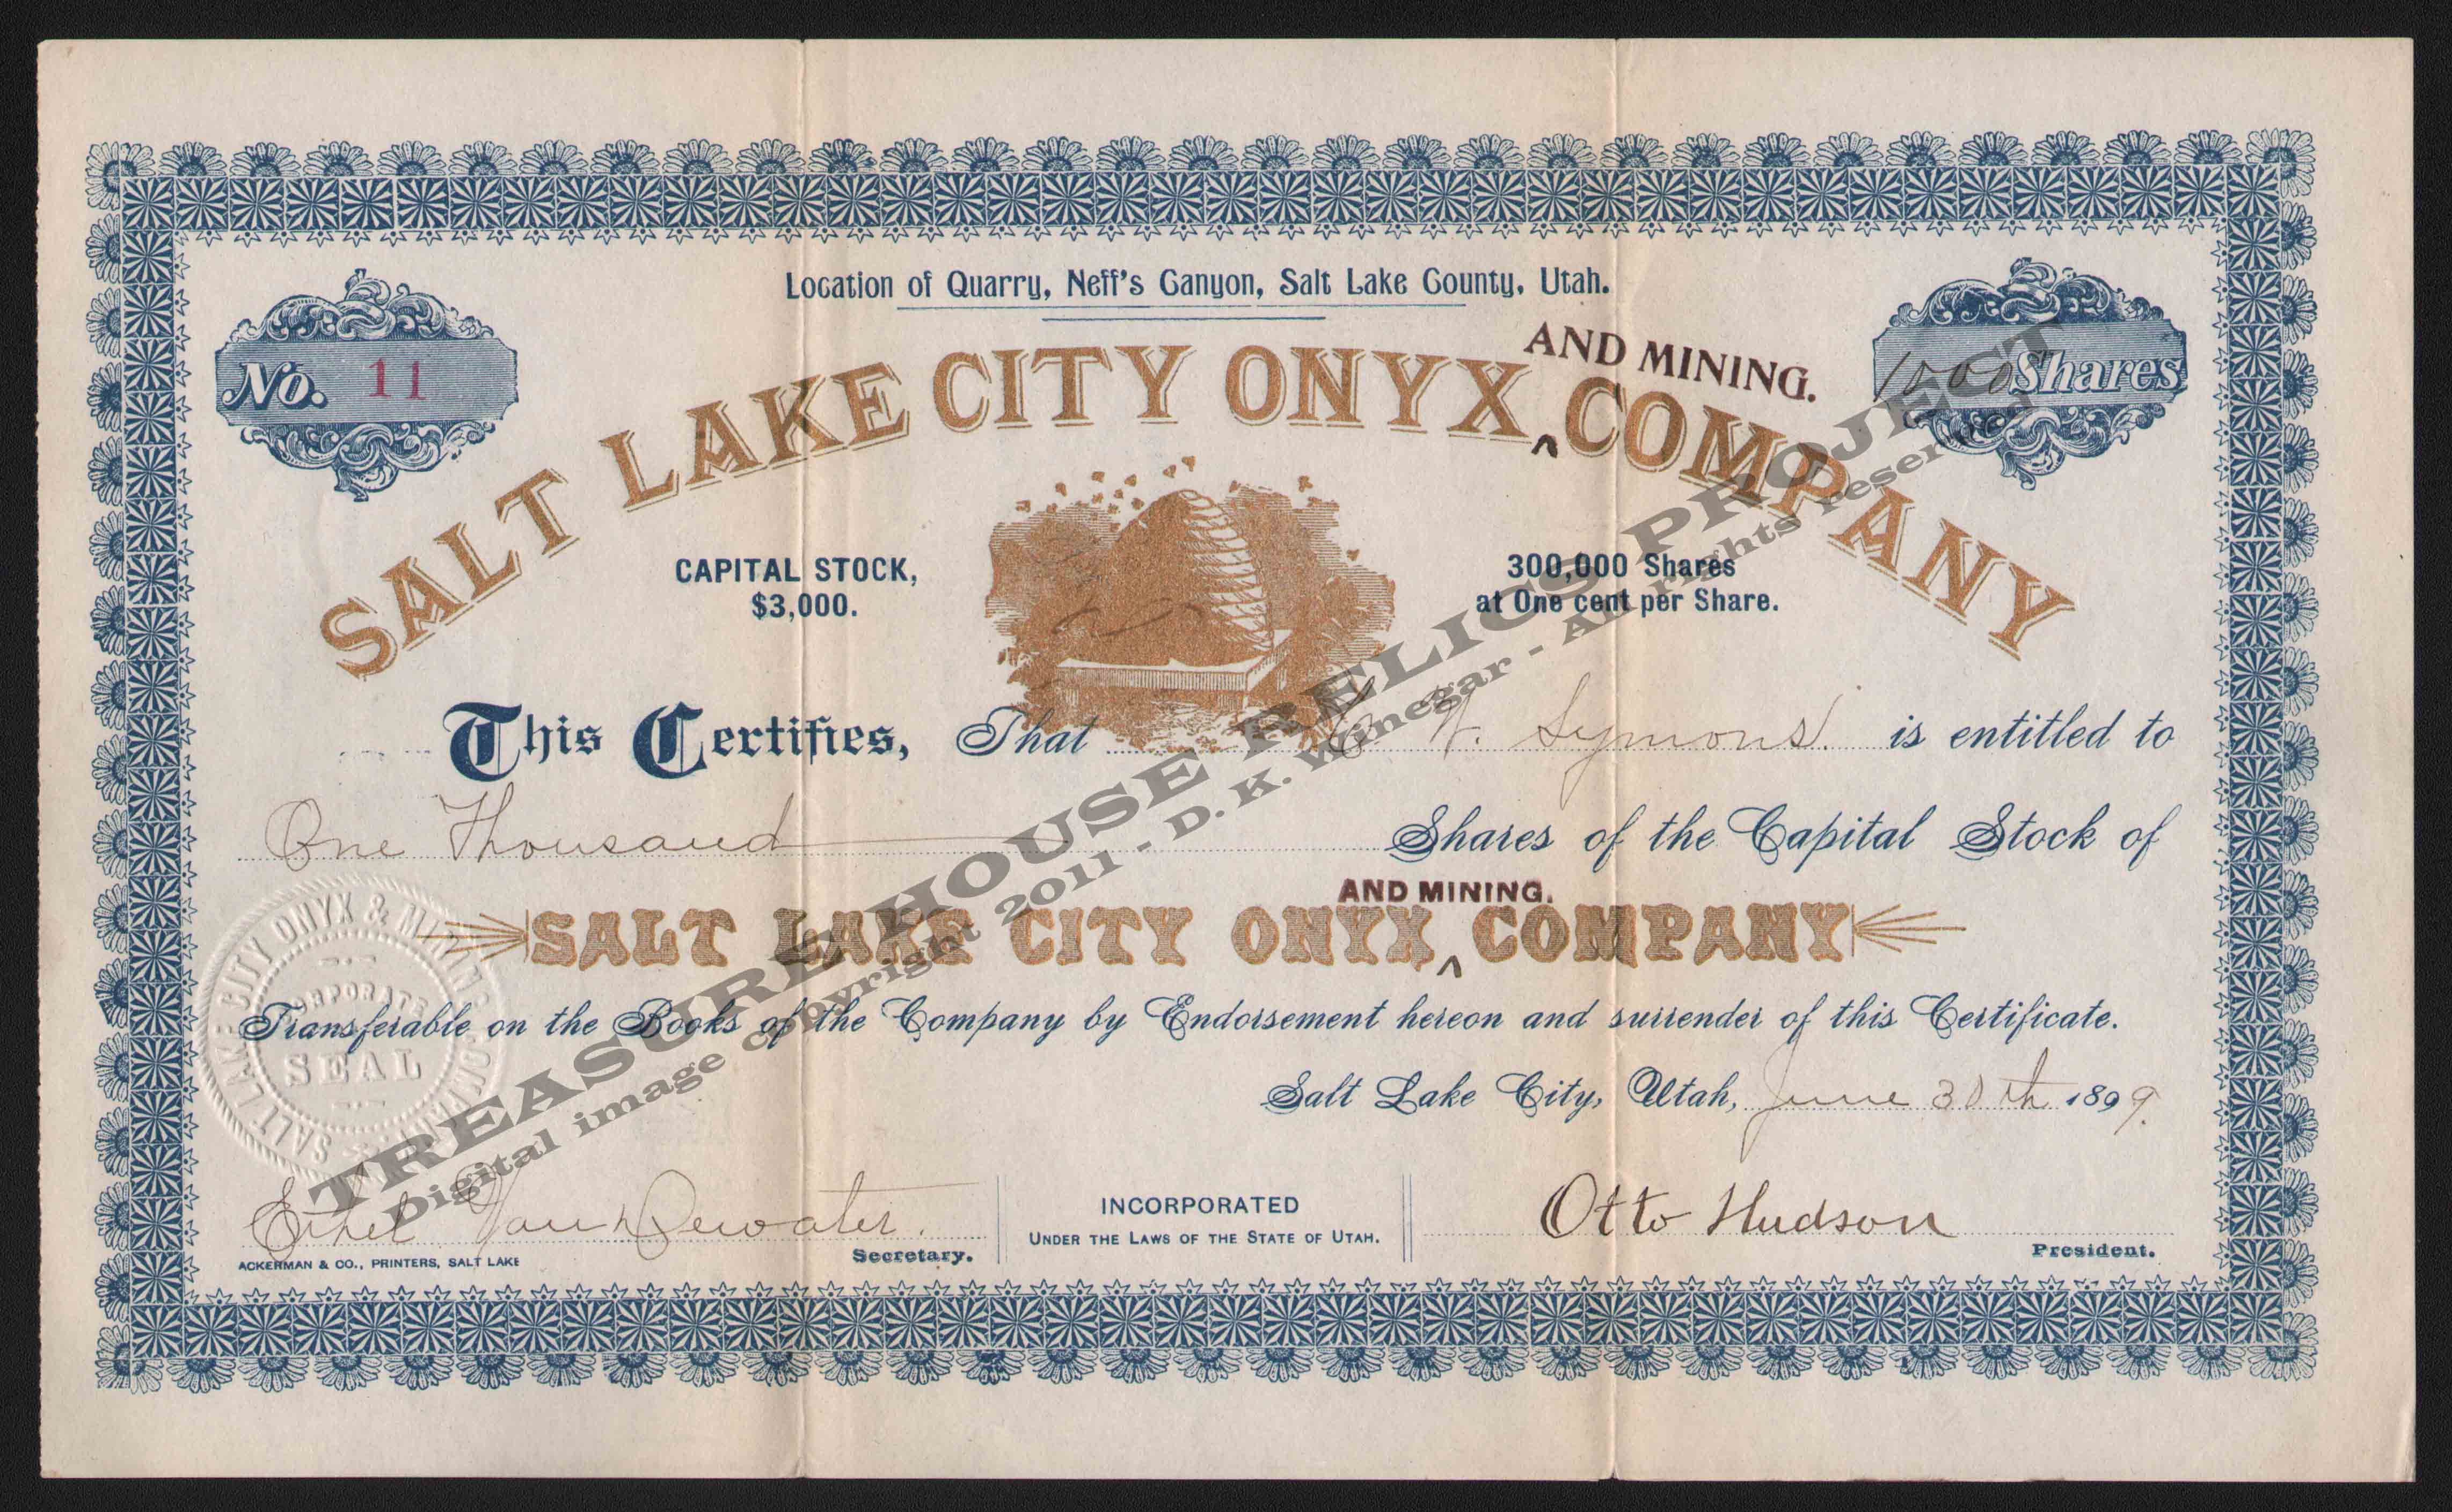 SALT_LAKE_CITY_ONYX_AND_MINING_COMPANY_11_1899_400_emboss.jpg